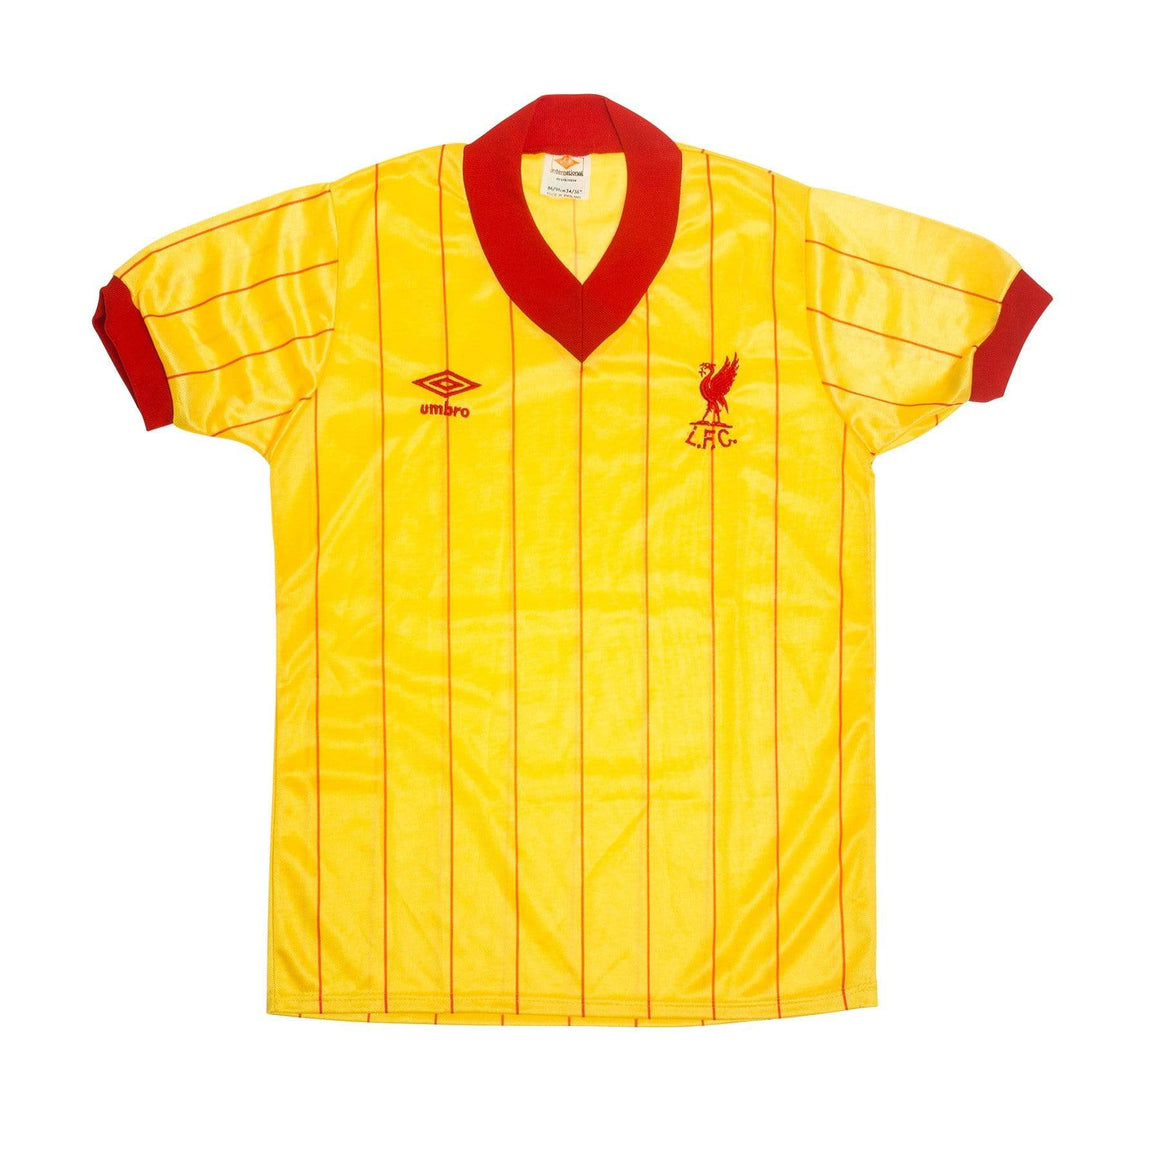 Football Shirt Collective 1981-84 Liverpool away shirt S Excellent